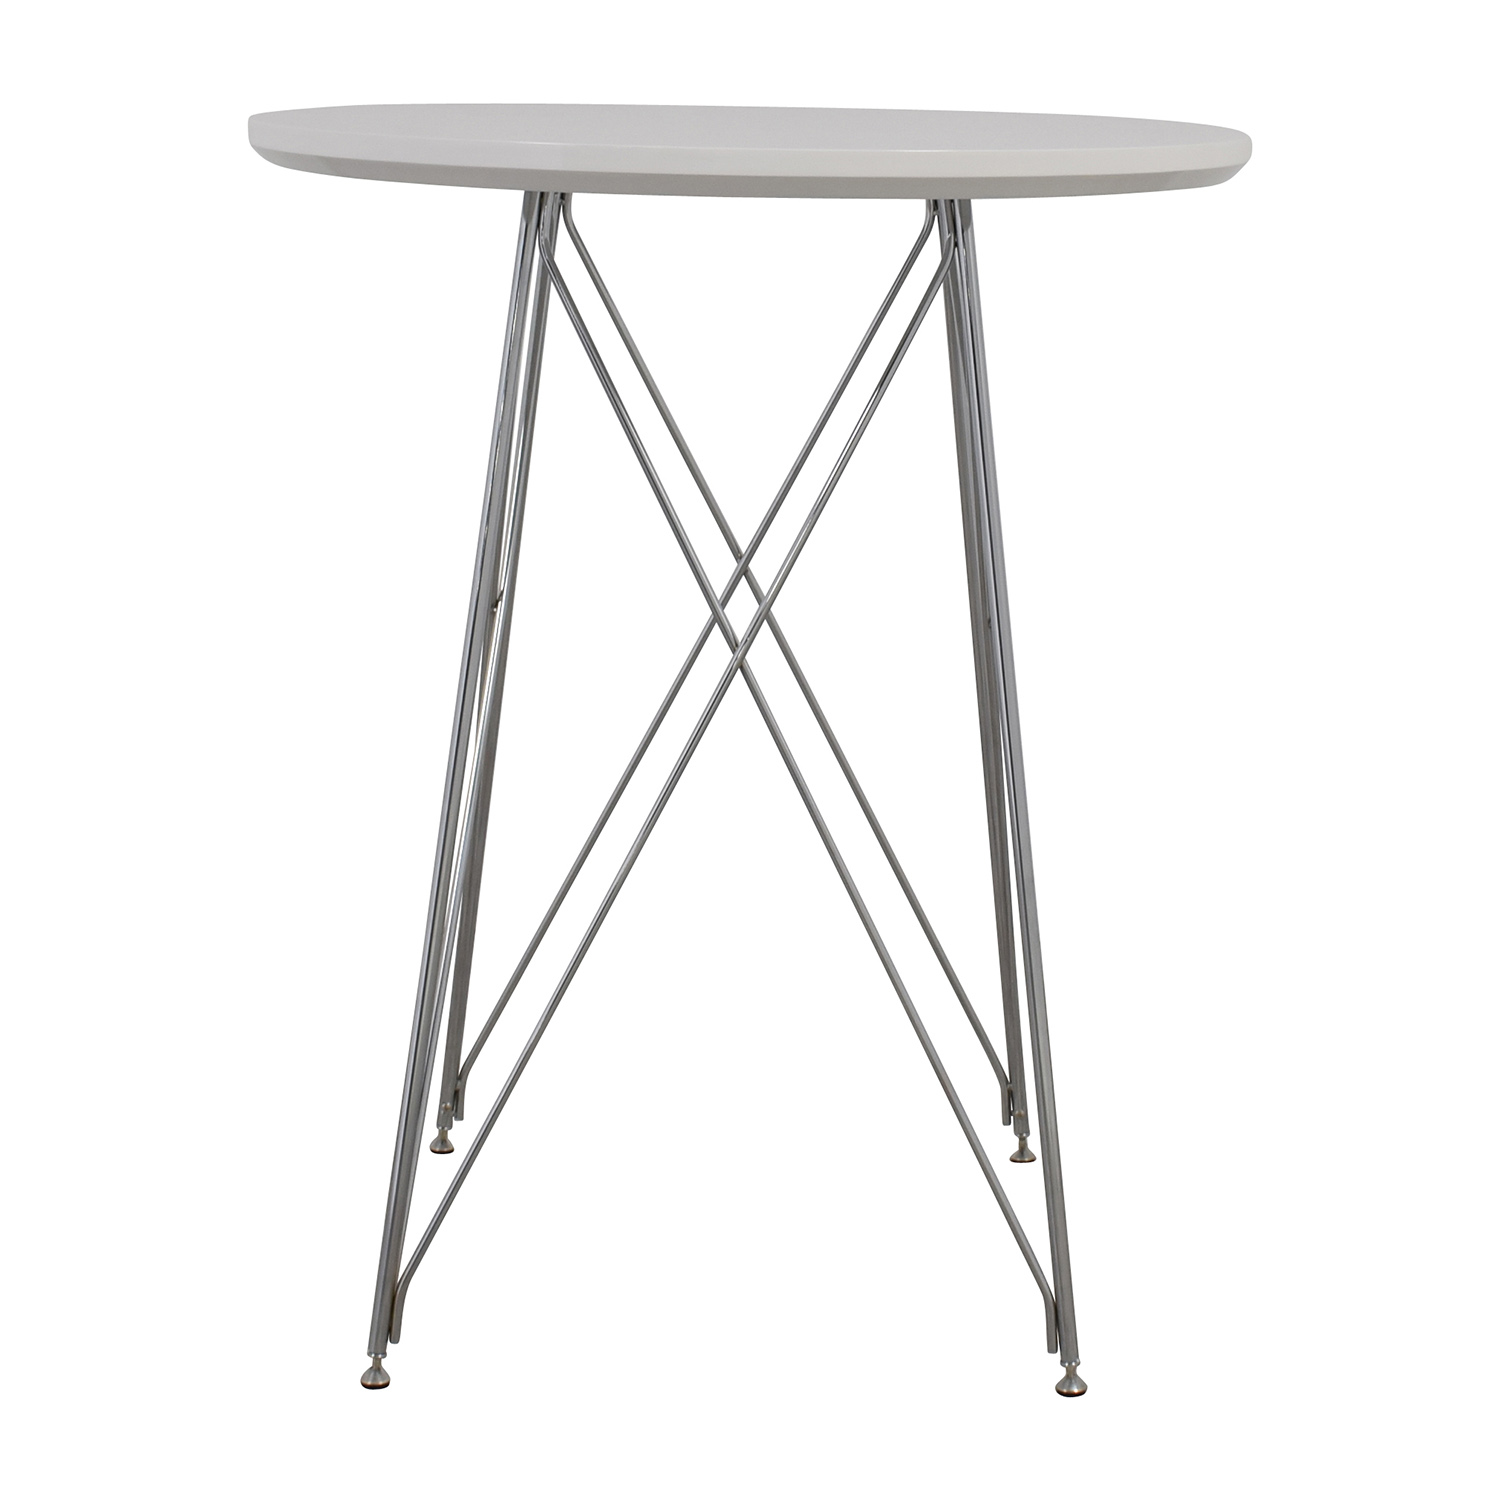 Monarch Furniture Monarch Furniture White Metal Bar Table used